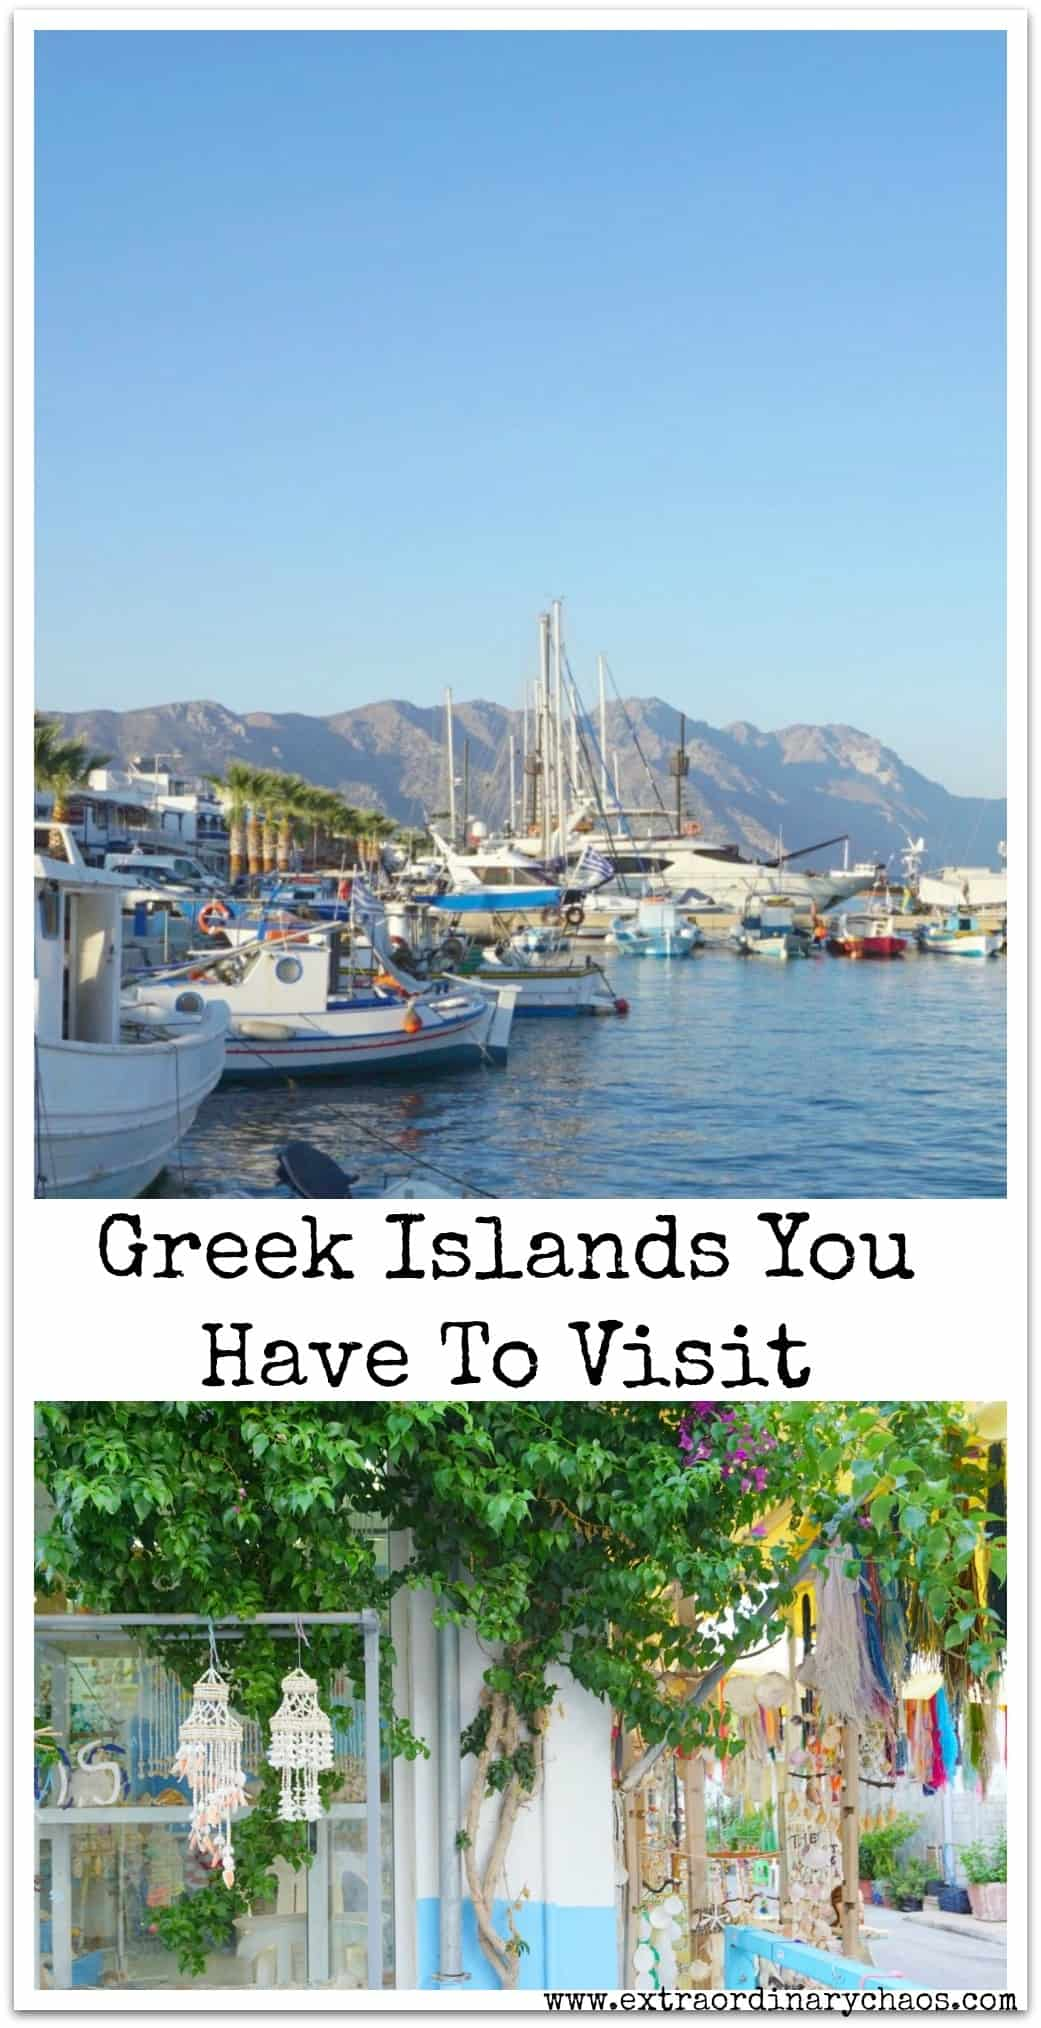 Thinking of a sailing or Island Hopping Holiday, check out thse Greek Islands you have to visit